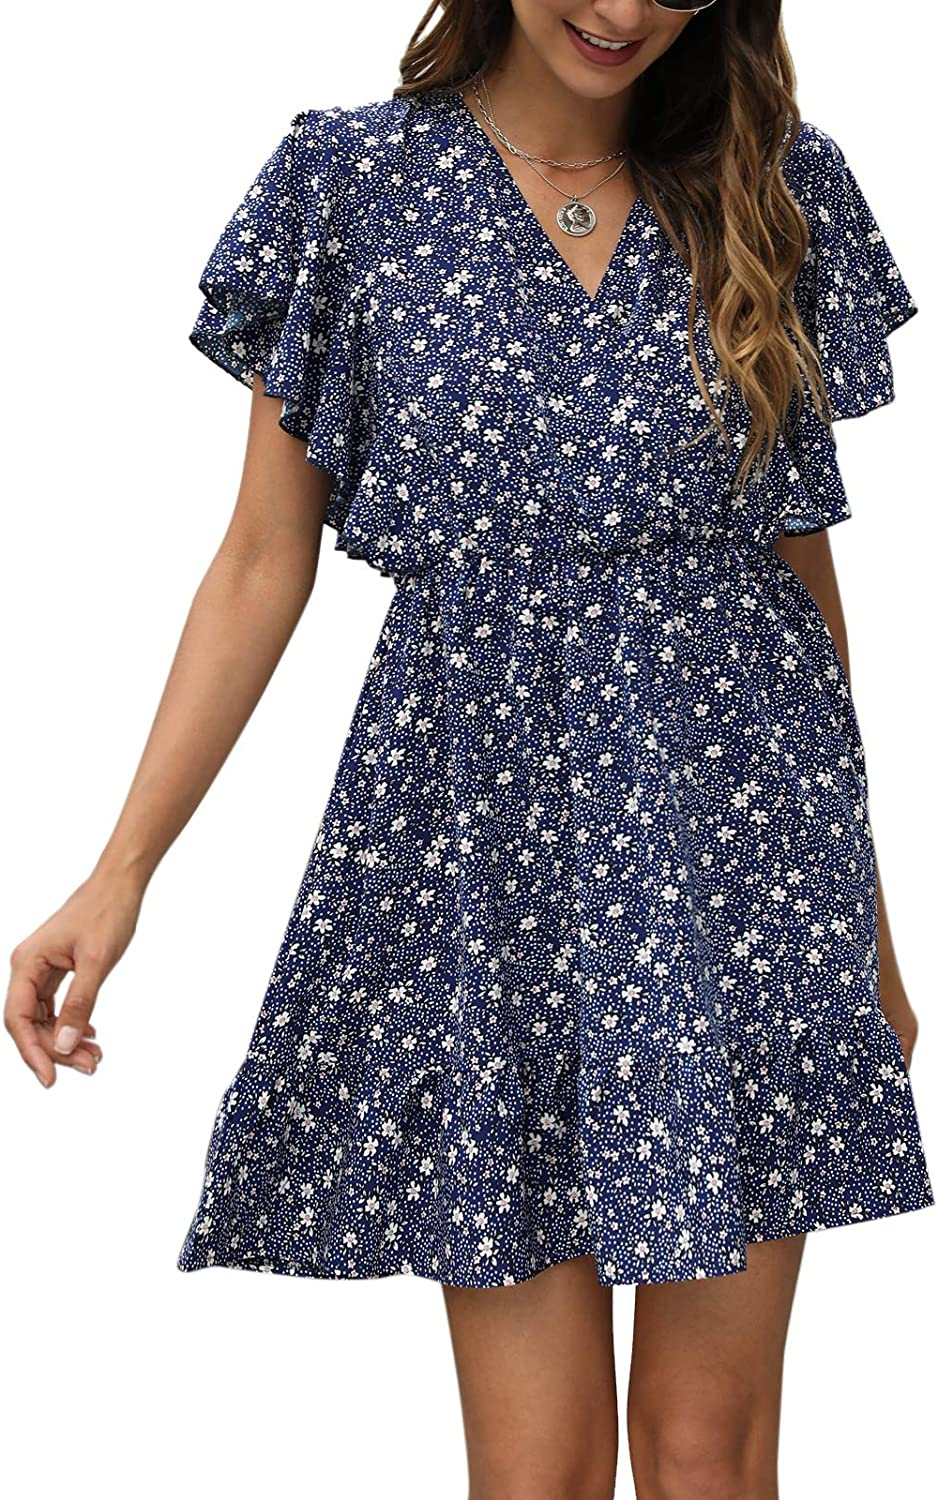 Manydress Women's Casual Max 84% OFF Floral Daily bargain sale Flow Butterfly Print Sleeve